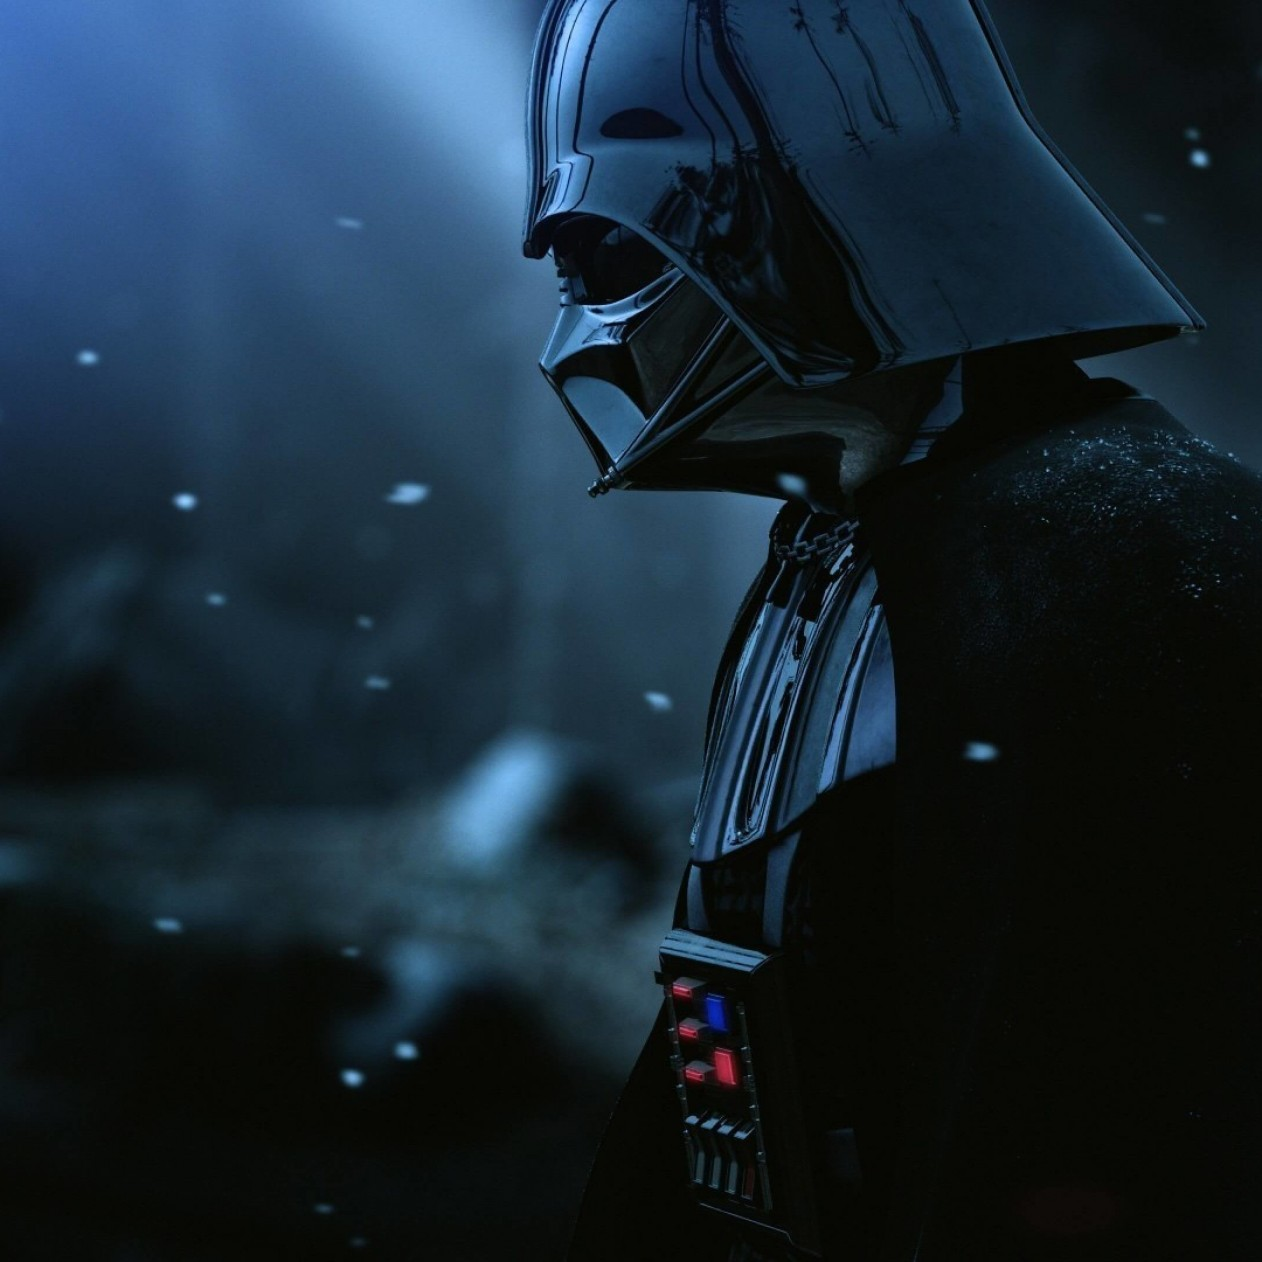 Darth Vader - The Force Unleashed 2 Wallpaper for Apple iPad mini